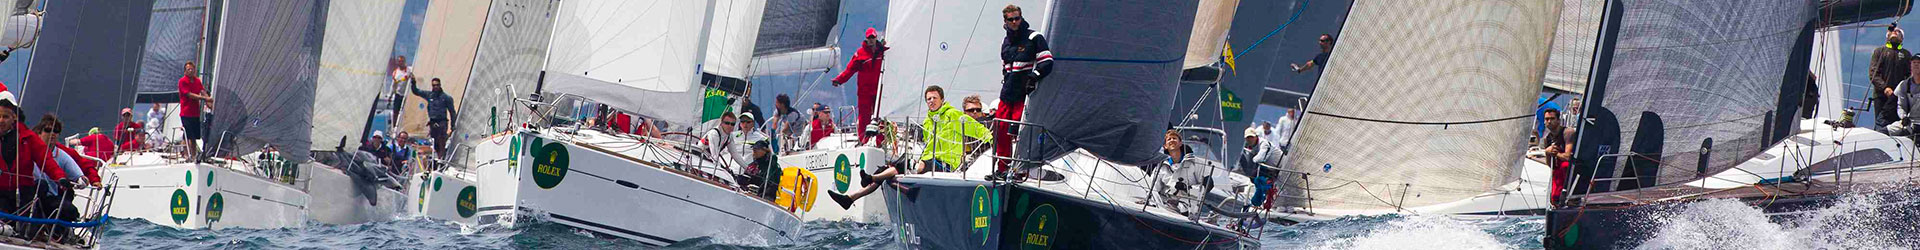 regatta official website | Rolex Giraglia results | Rolex Giraglia dates